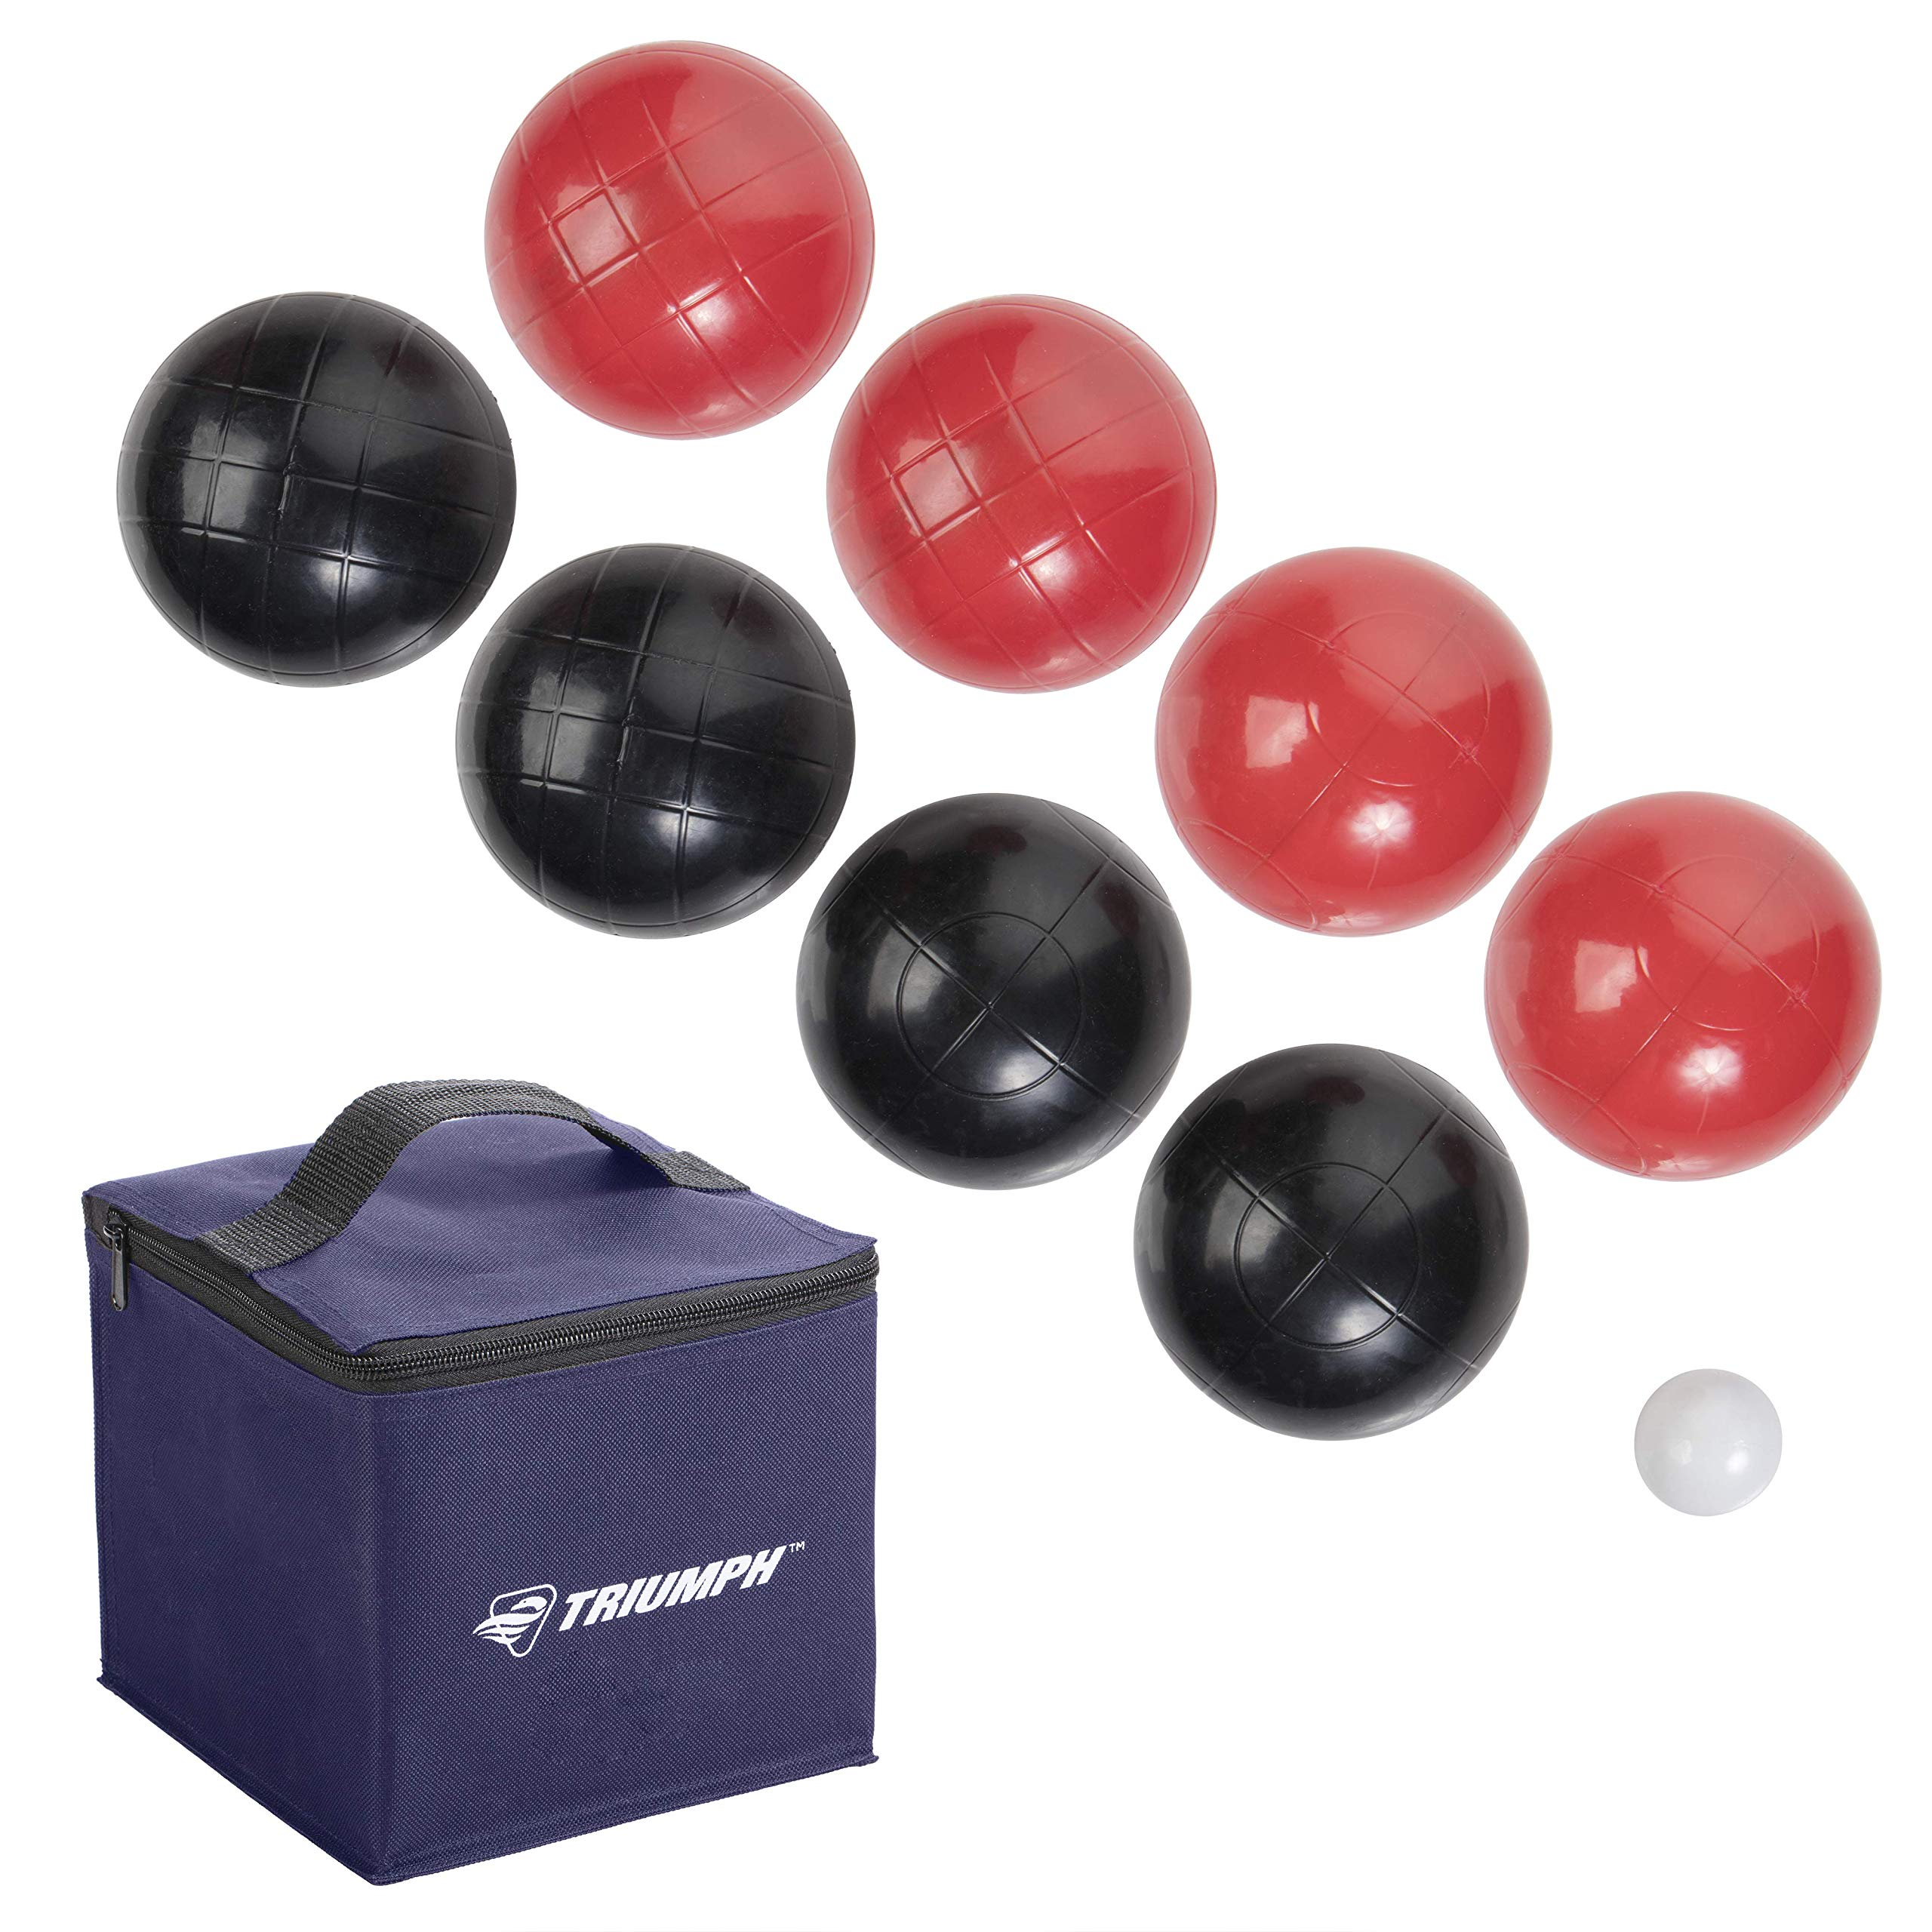 Triumph Recreational Outdoor Bocce Ball Set Includes 8 Bocce Balls, Jack, and Sports Carry Bag by Triumph Sports